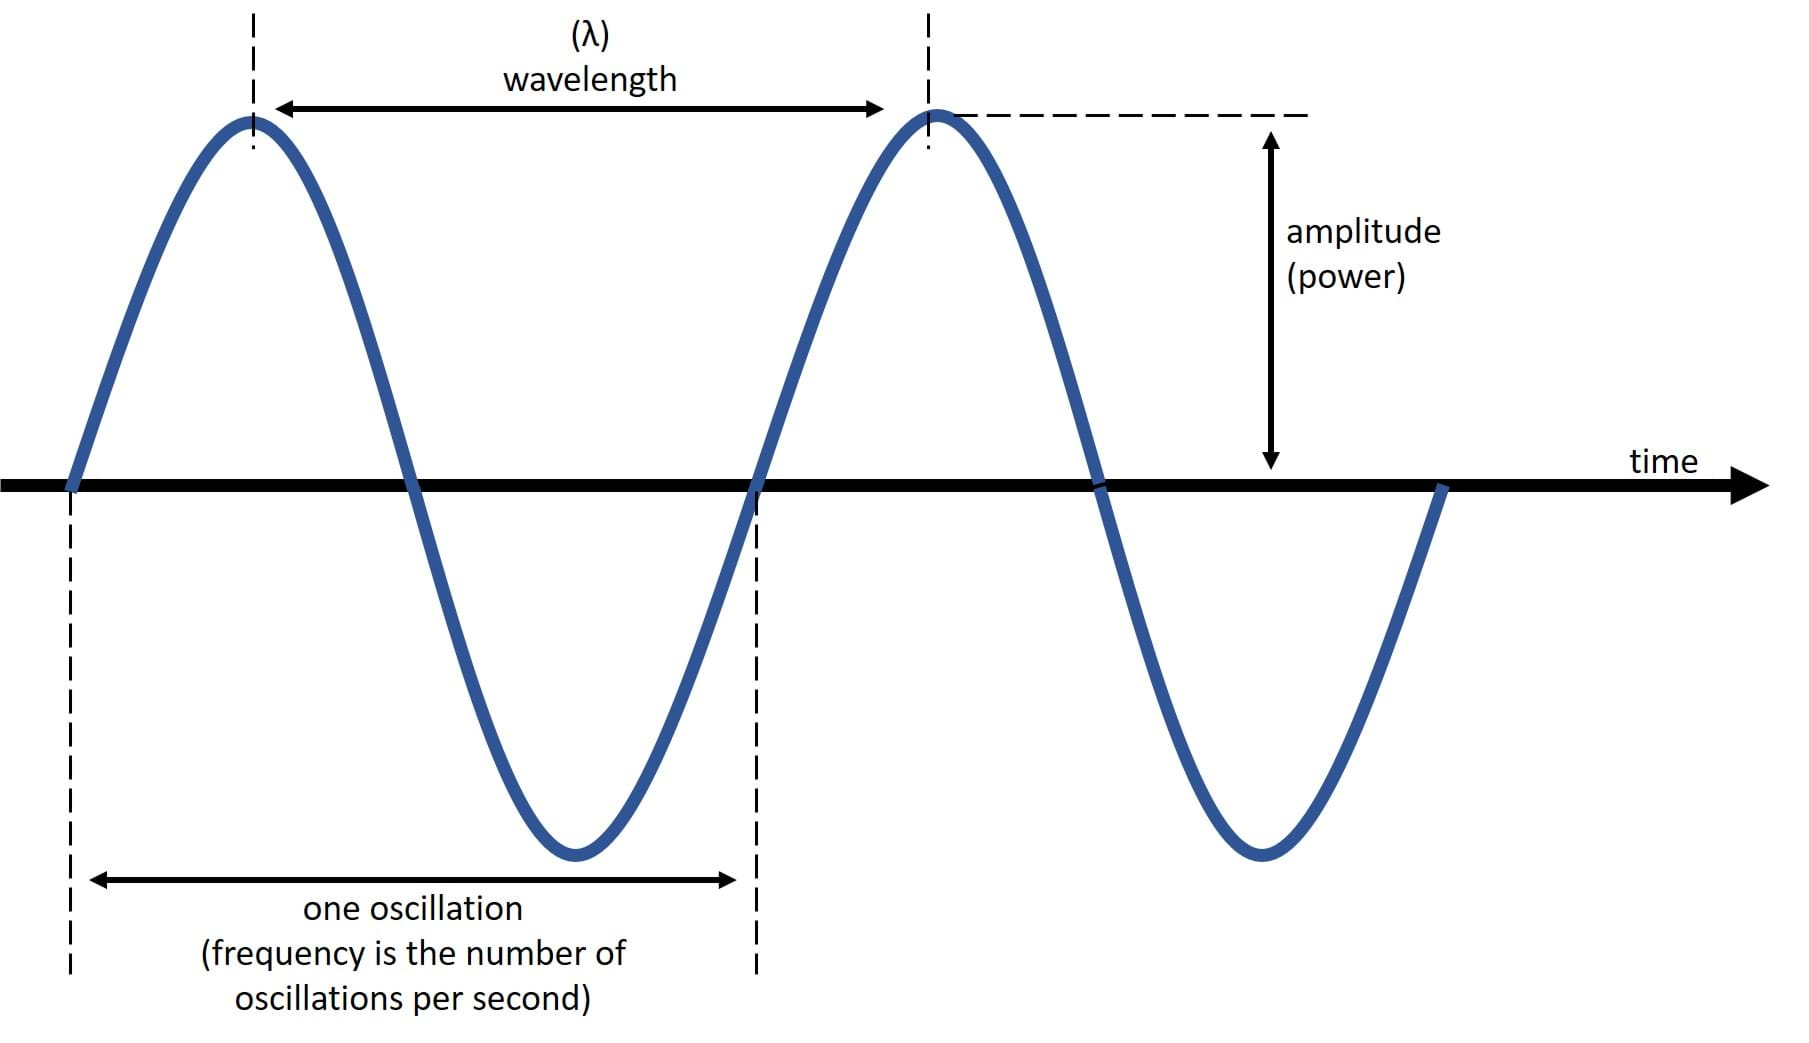 Image of a sound wave. Labels include oscillation, wavelength, amplitude, and time.